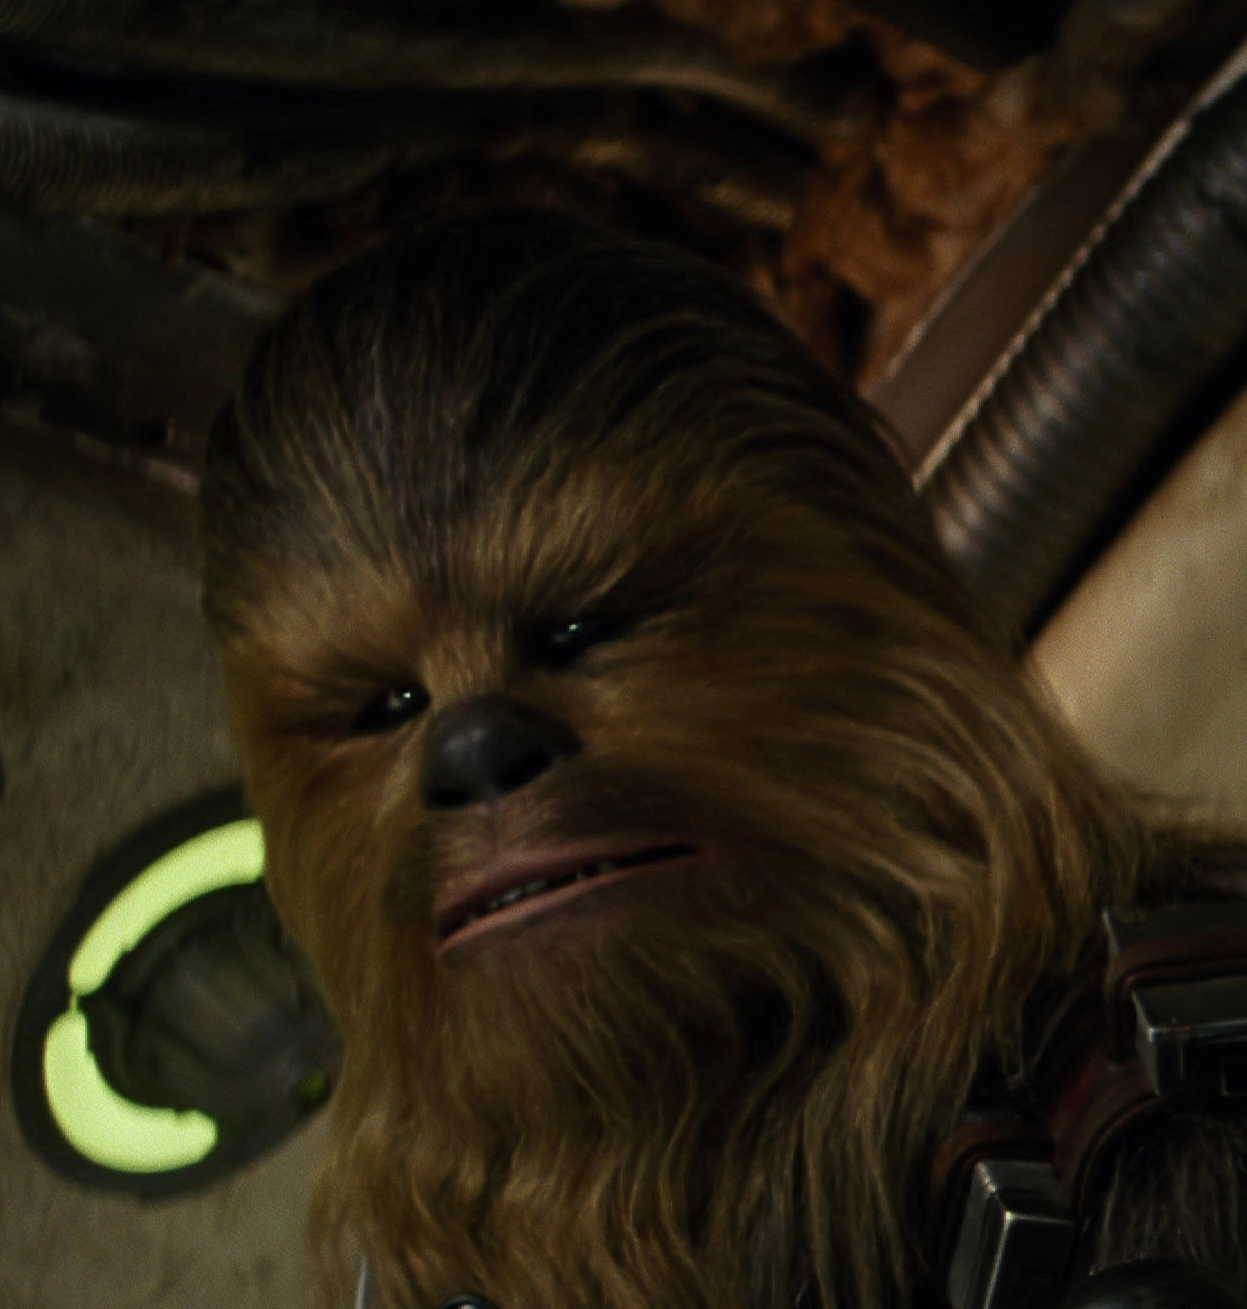 Chewbacca | Disney Wiki | FANDOM powered by Wikia